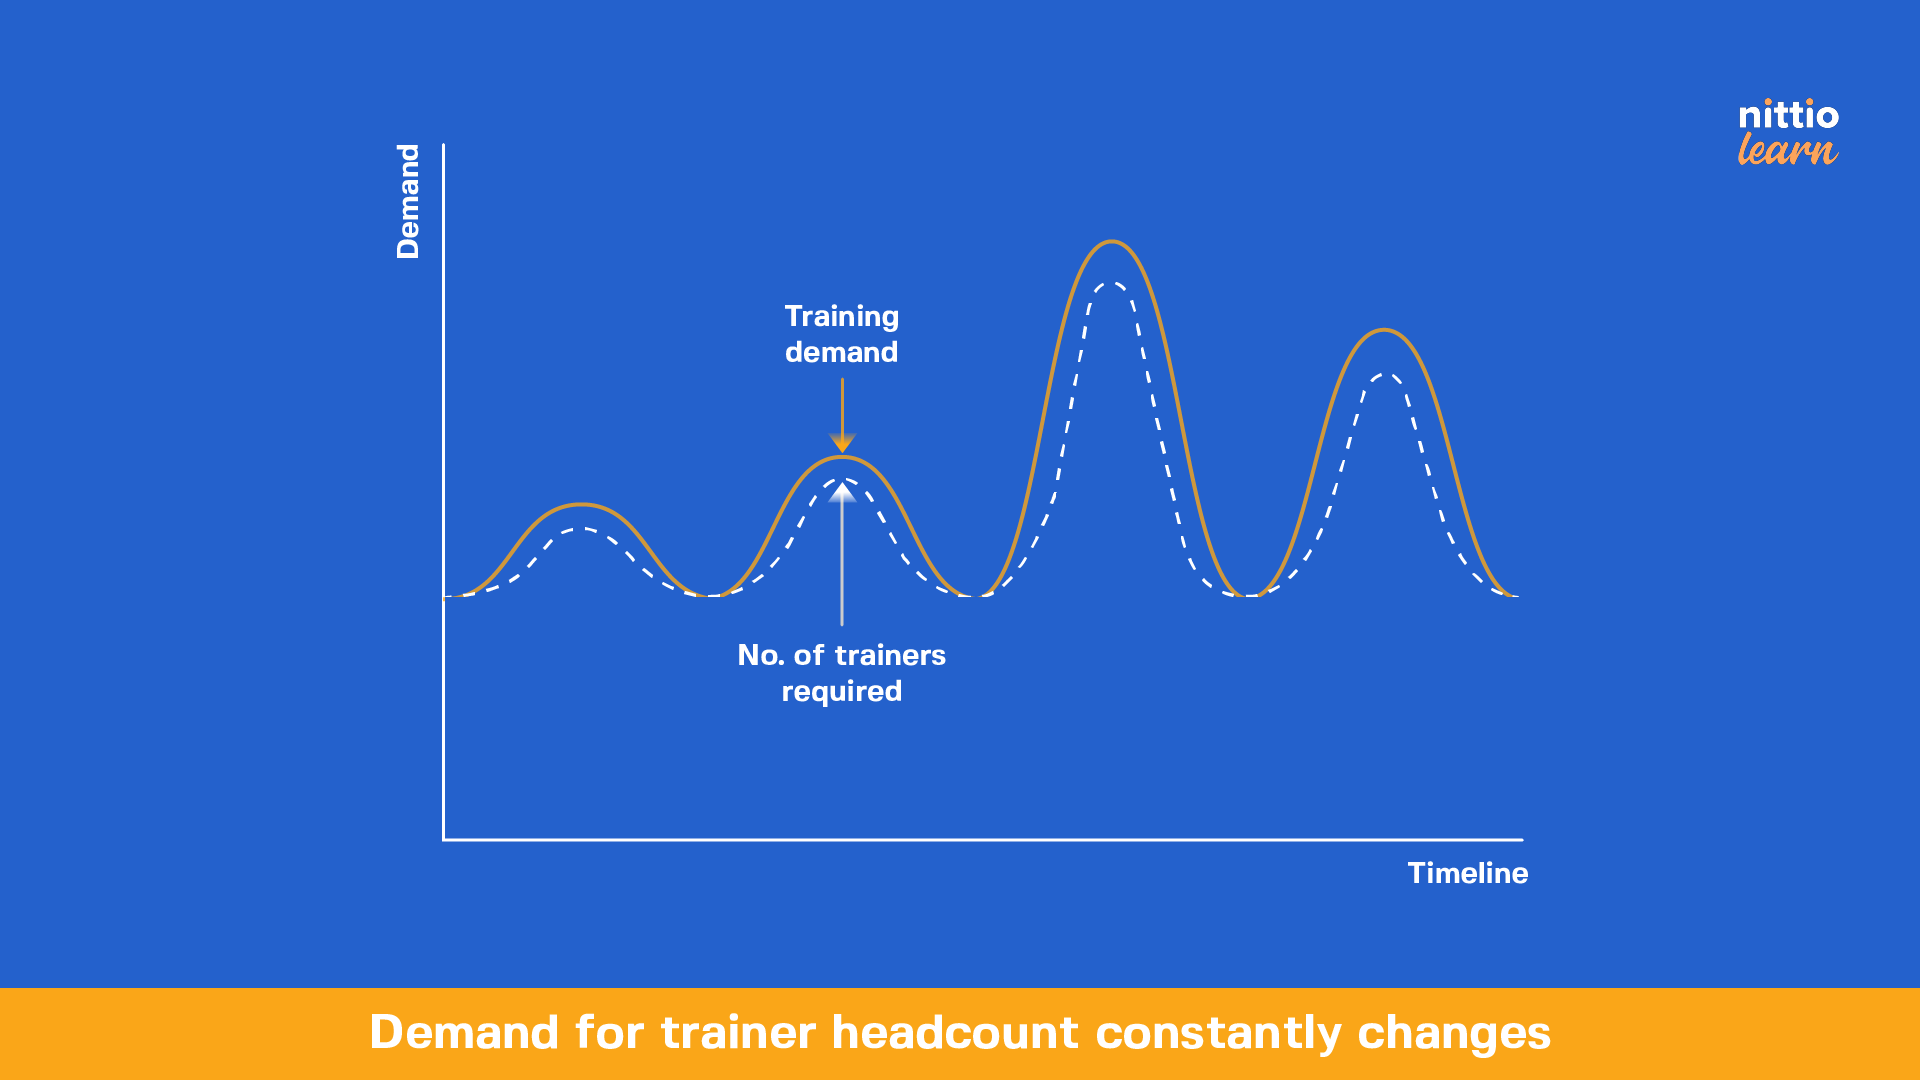 Nittio Learn - Demand for trainer headcount always changes at contact centers